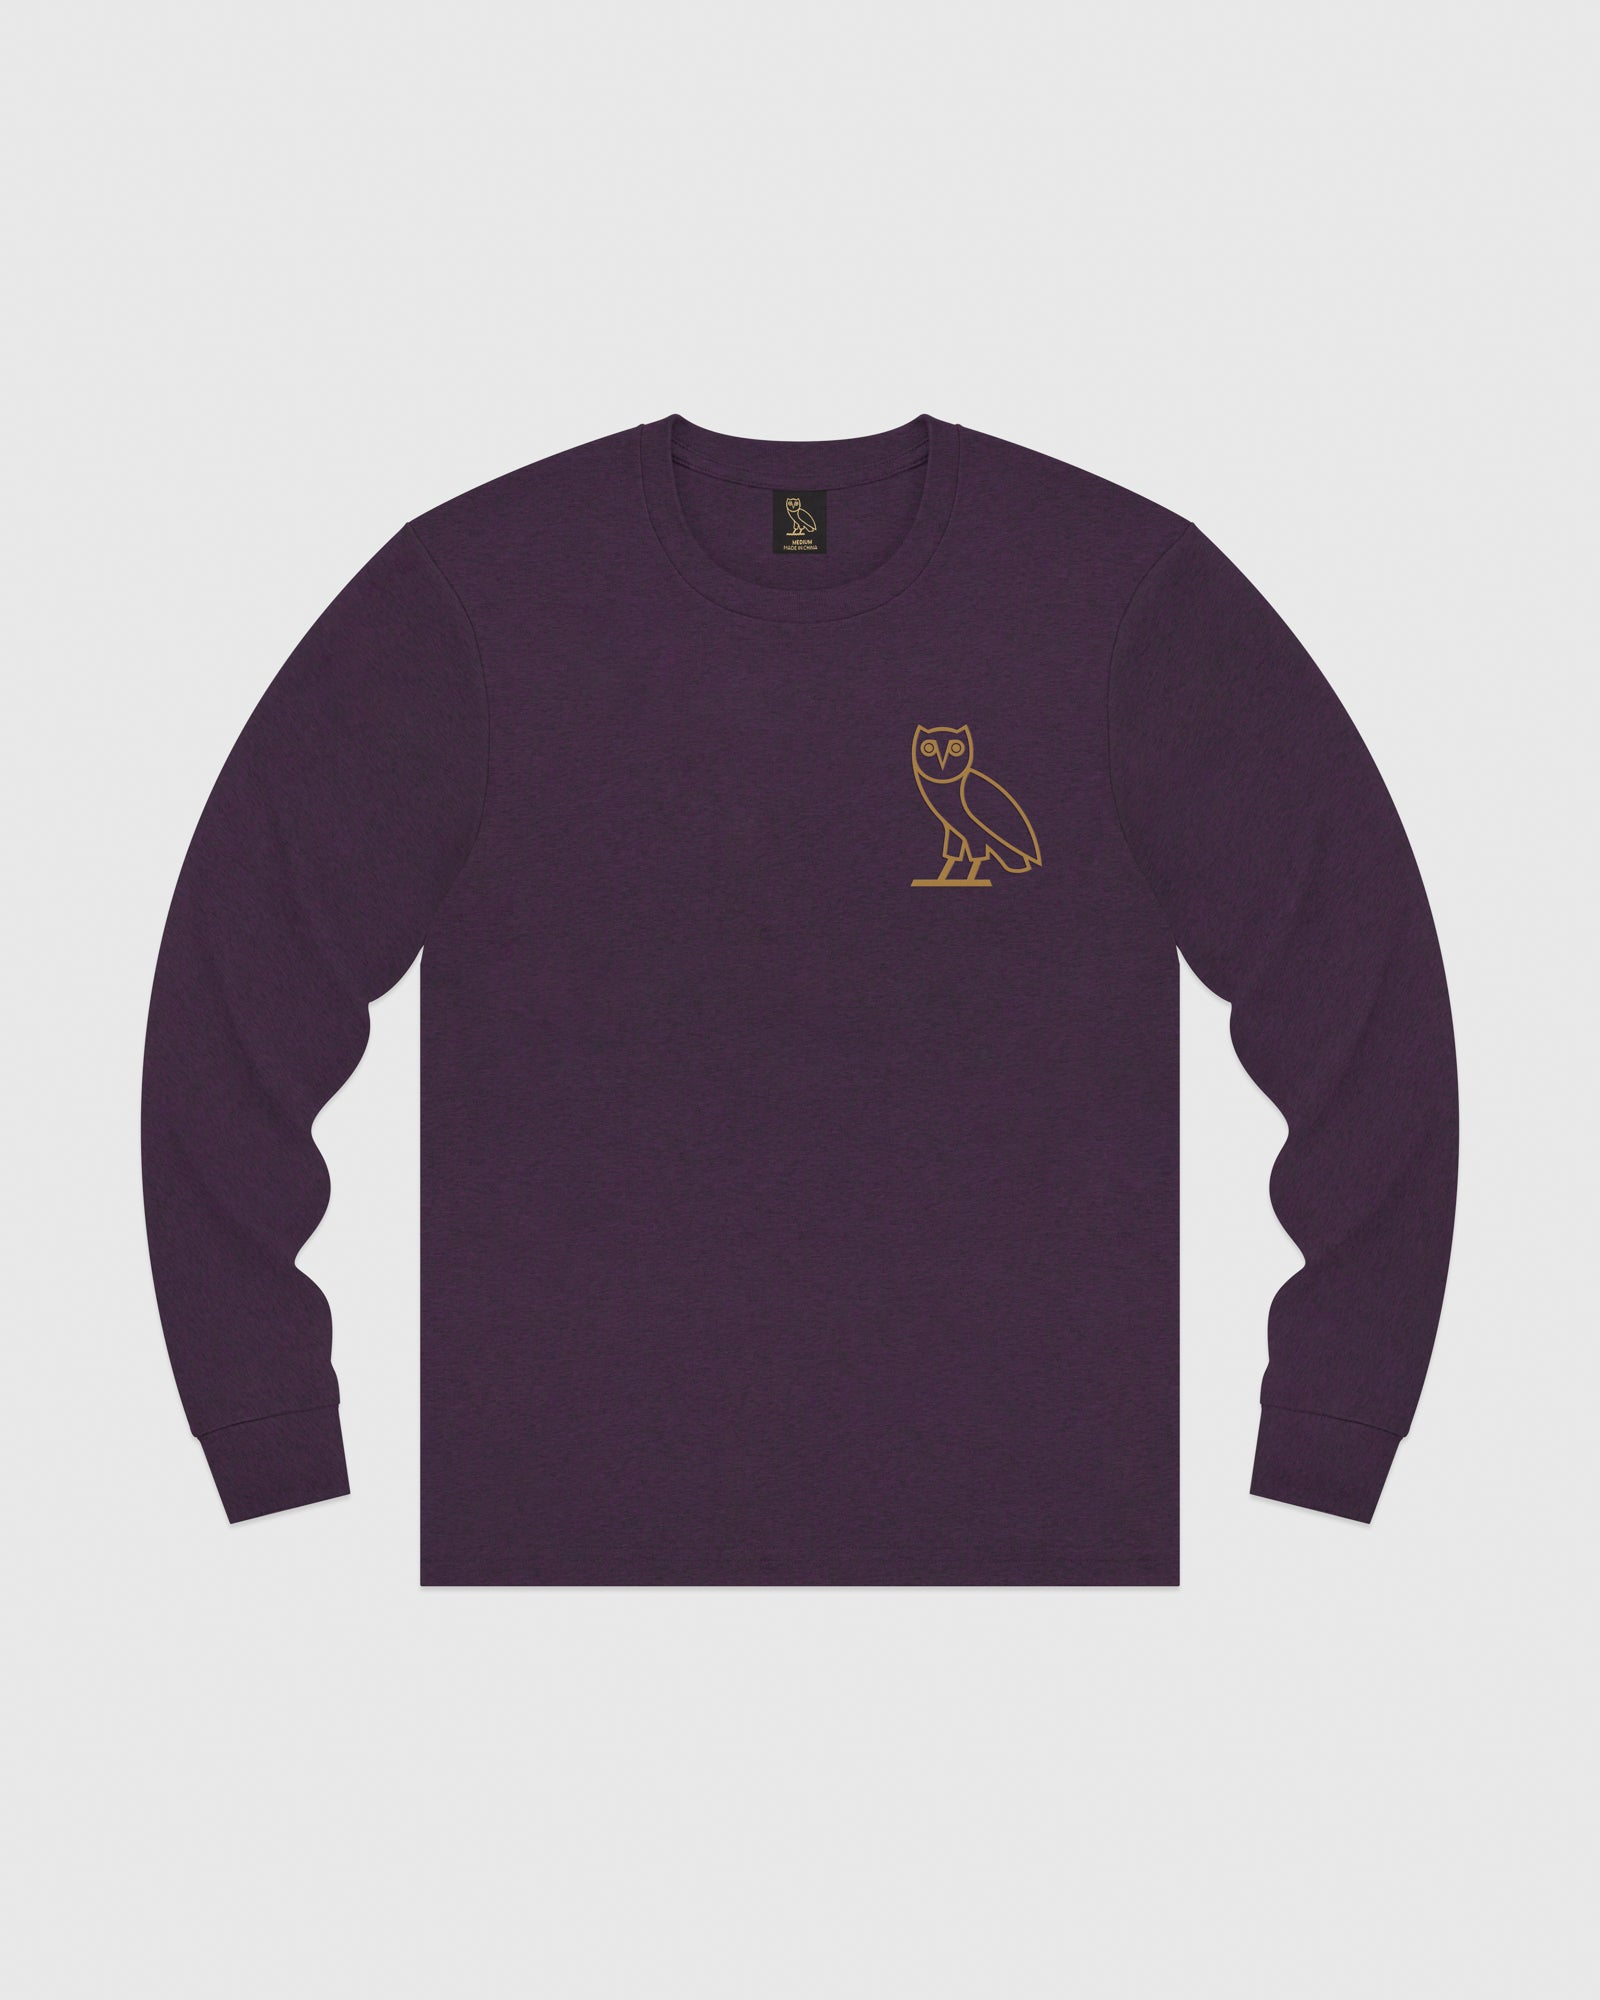 OWL LONGSLEEVE T-SHIRT - HEATHER PURPLE IMAGE #1